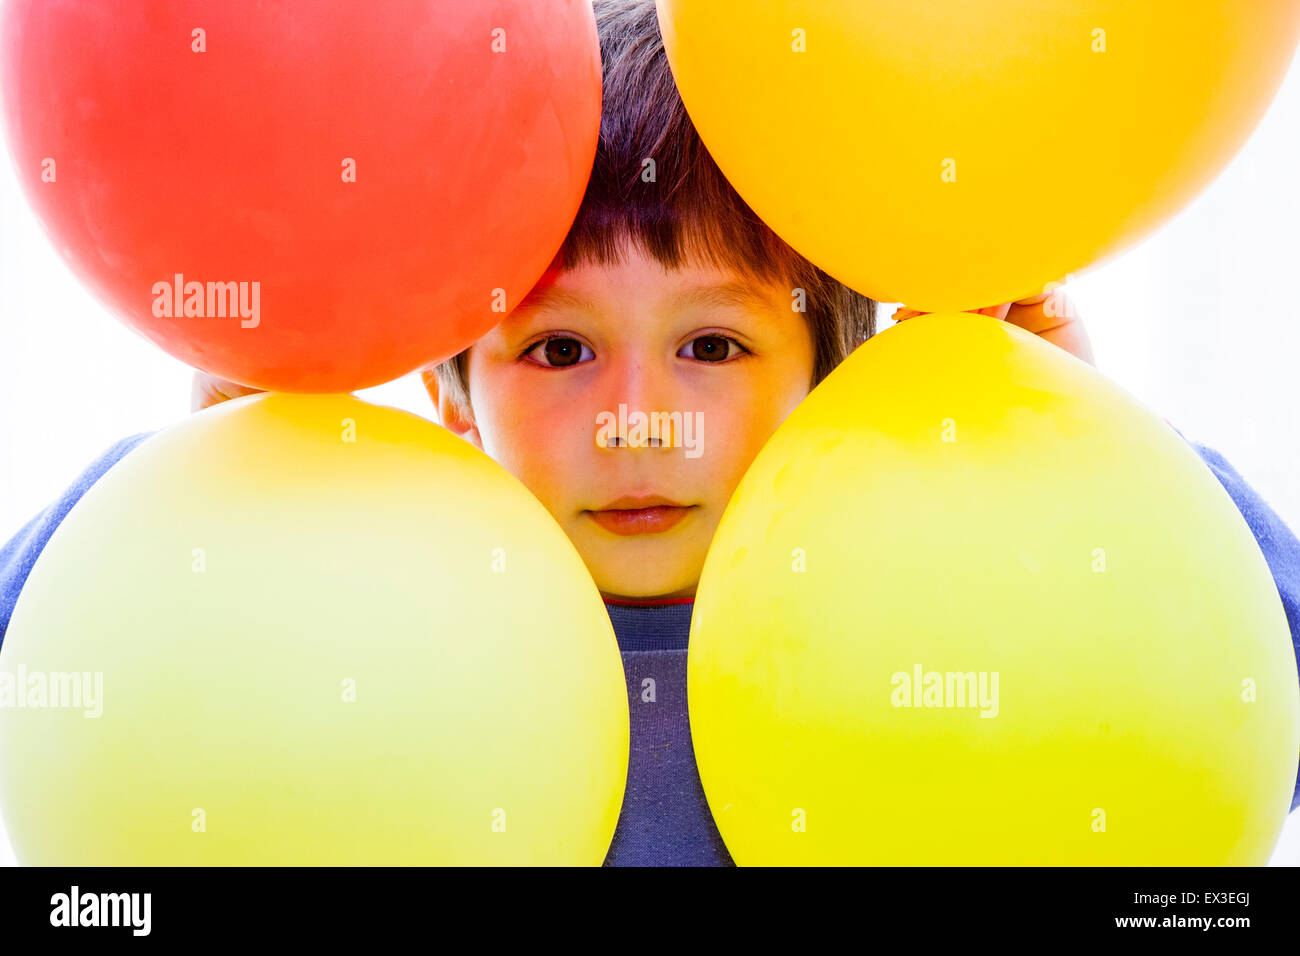 4 to 6 year old Caucasian boy, indoor. Face peeking through gap, surrounded by four balloons. Eye contact. - Stock Image